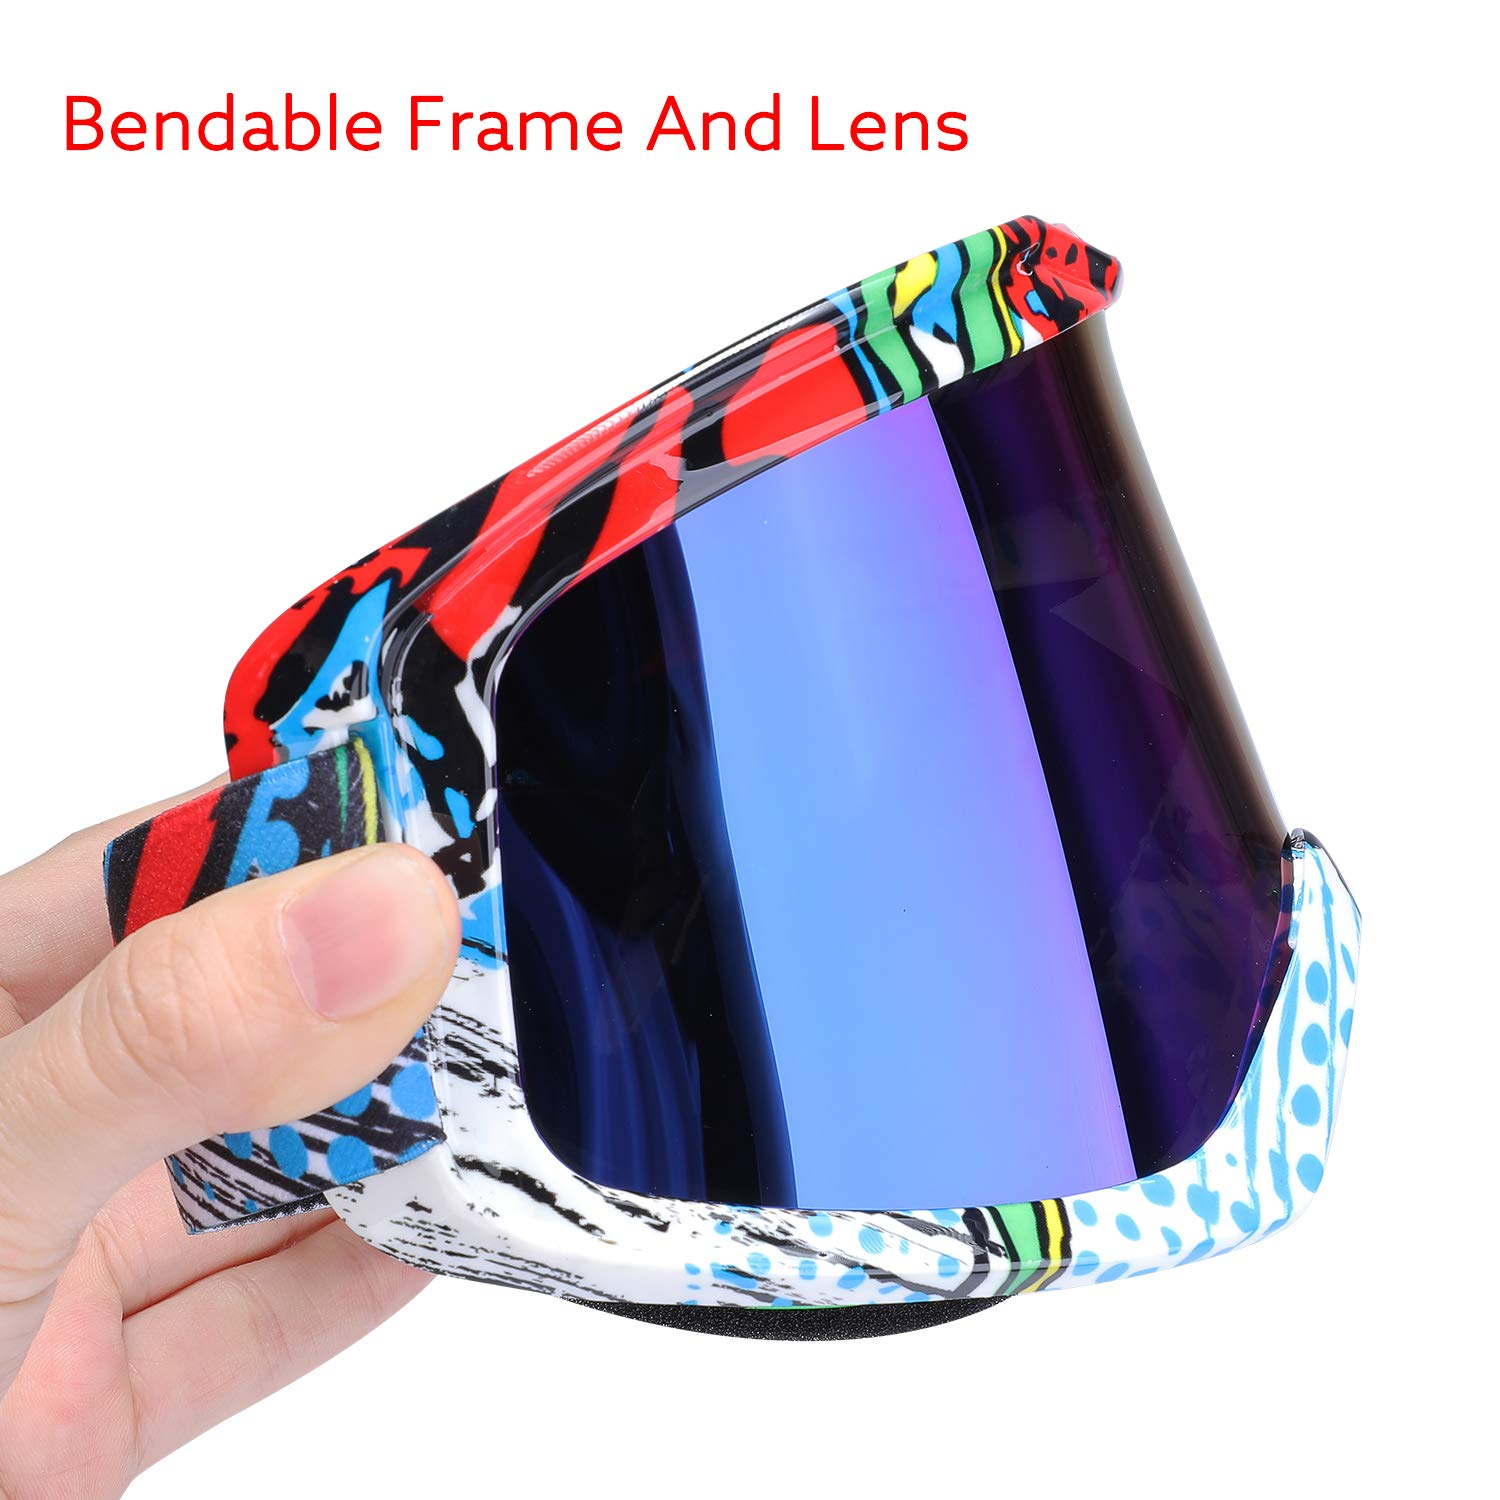 Red Frame+Tined lens off Road Riding Racing Dirt Bike Motocross Goggles,Dustproof Windproof Anti-Scratch Protective Glasses G4Free ATV Goggles Motorcycle Goggles Over Glasses for Adult